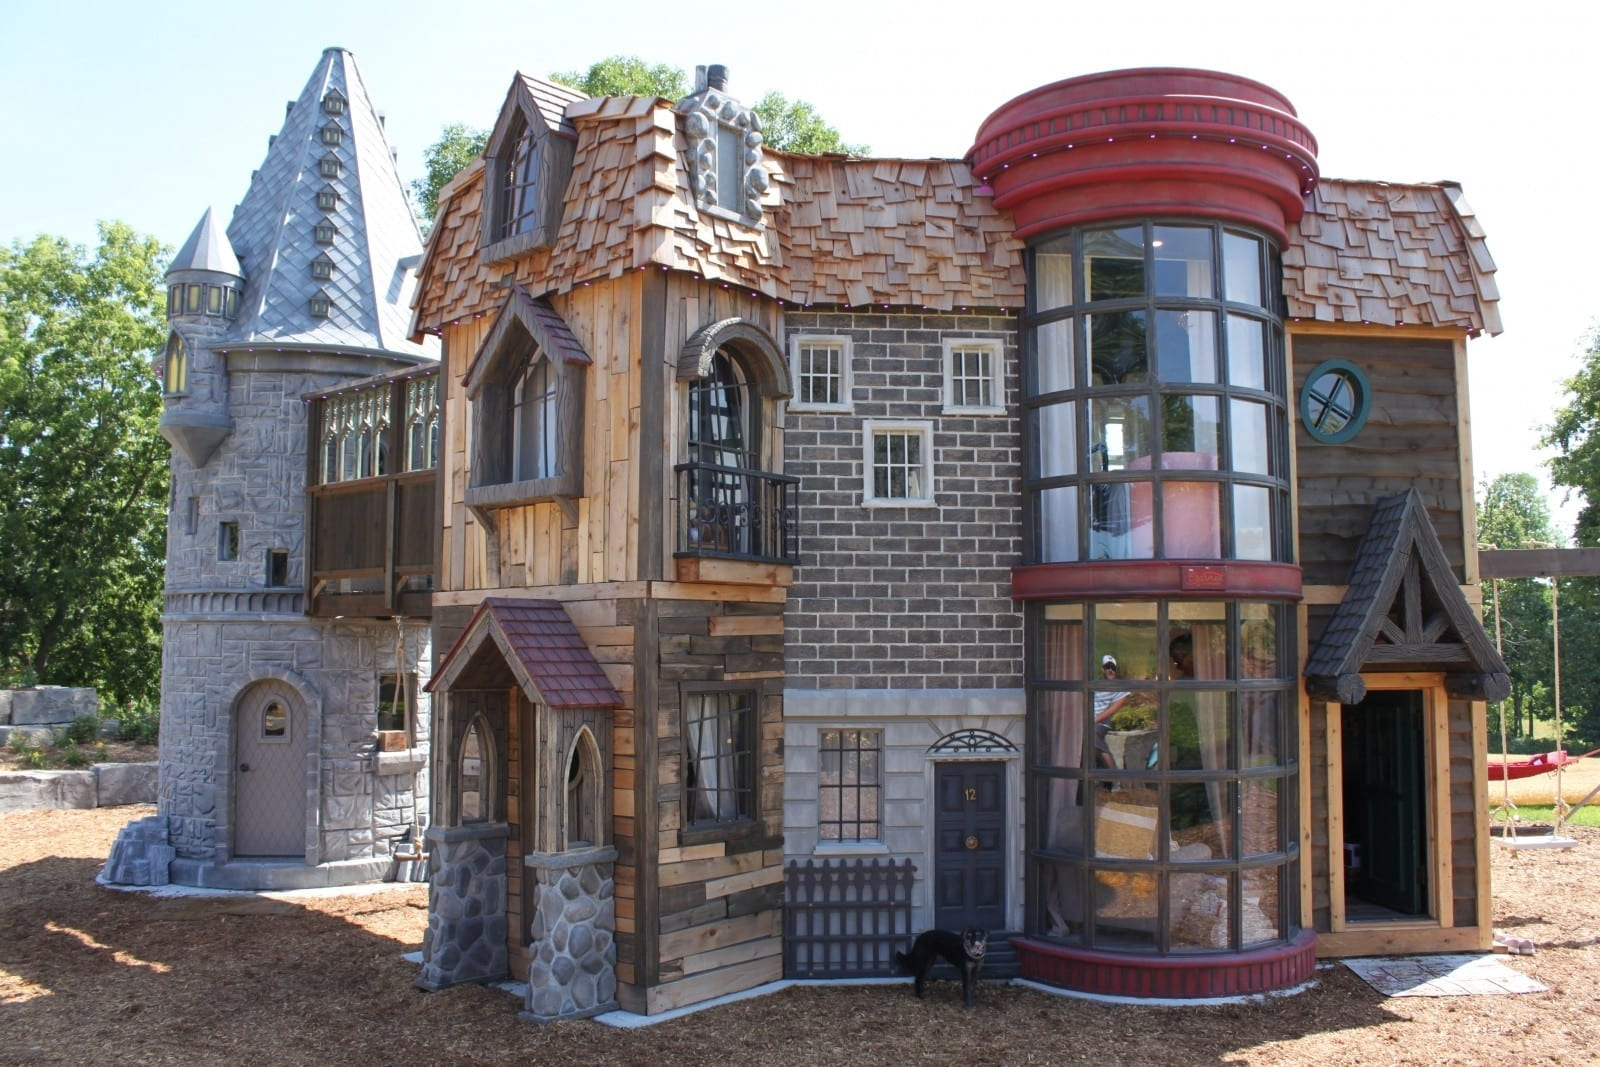 Meet The Little Girl With Possibly The Best Playhouse In The World – A Massive 350sqft Harry Potter Themed Fortress